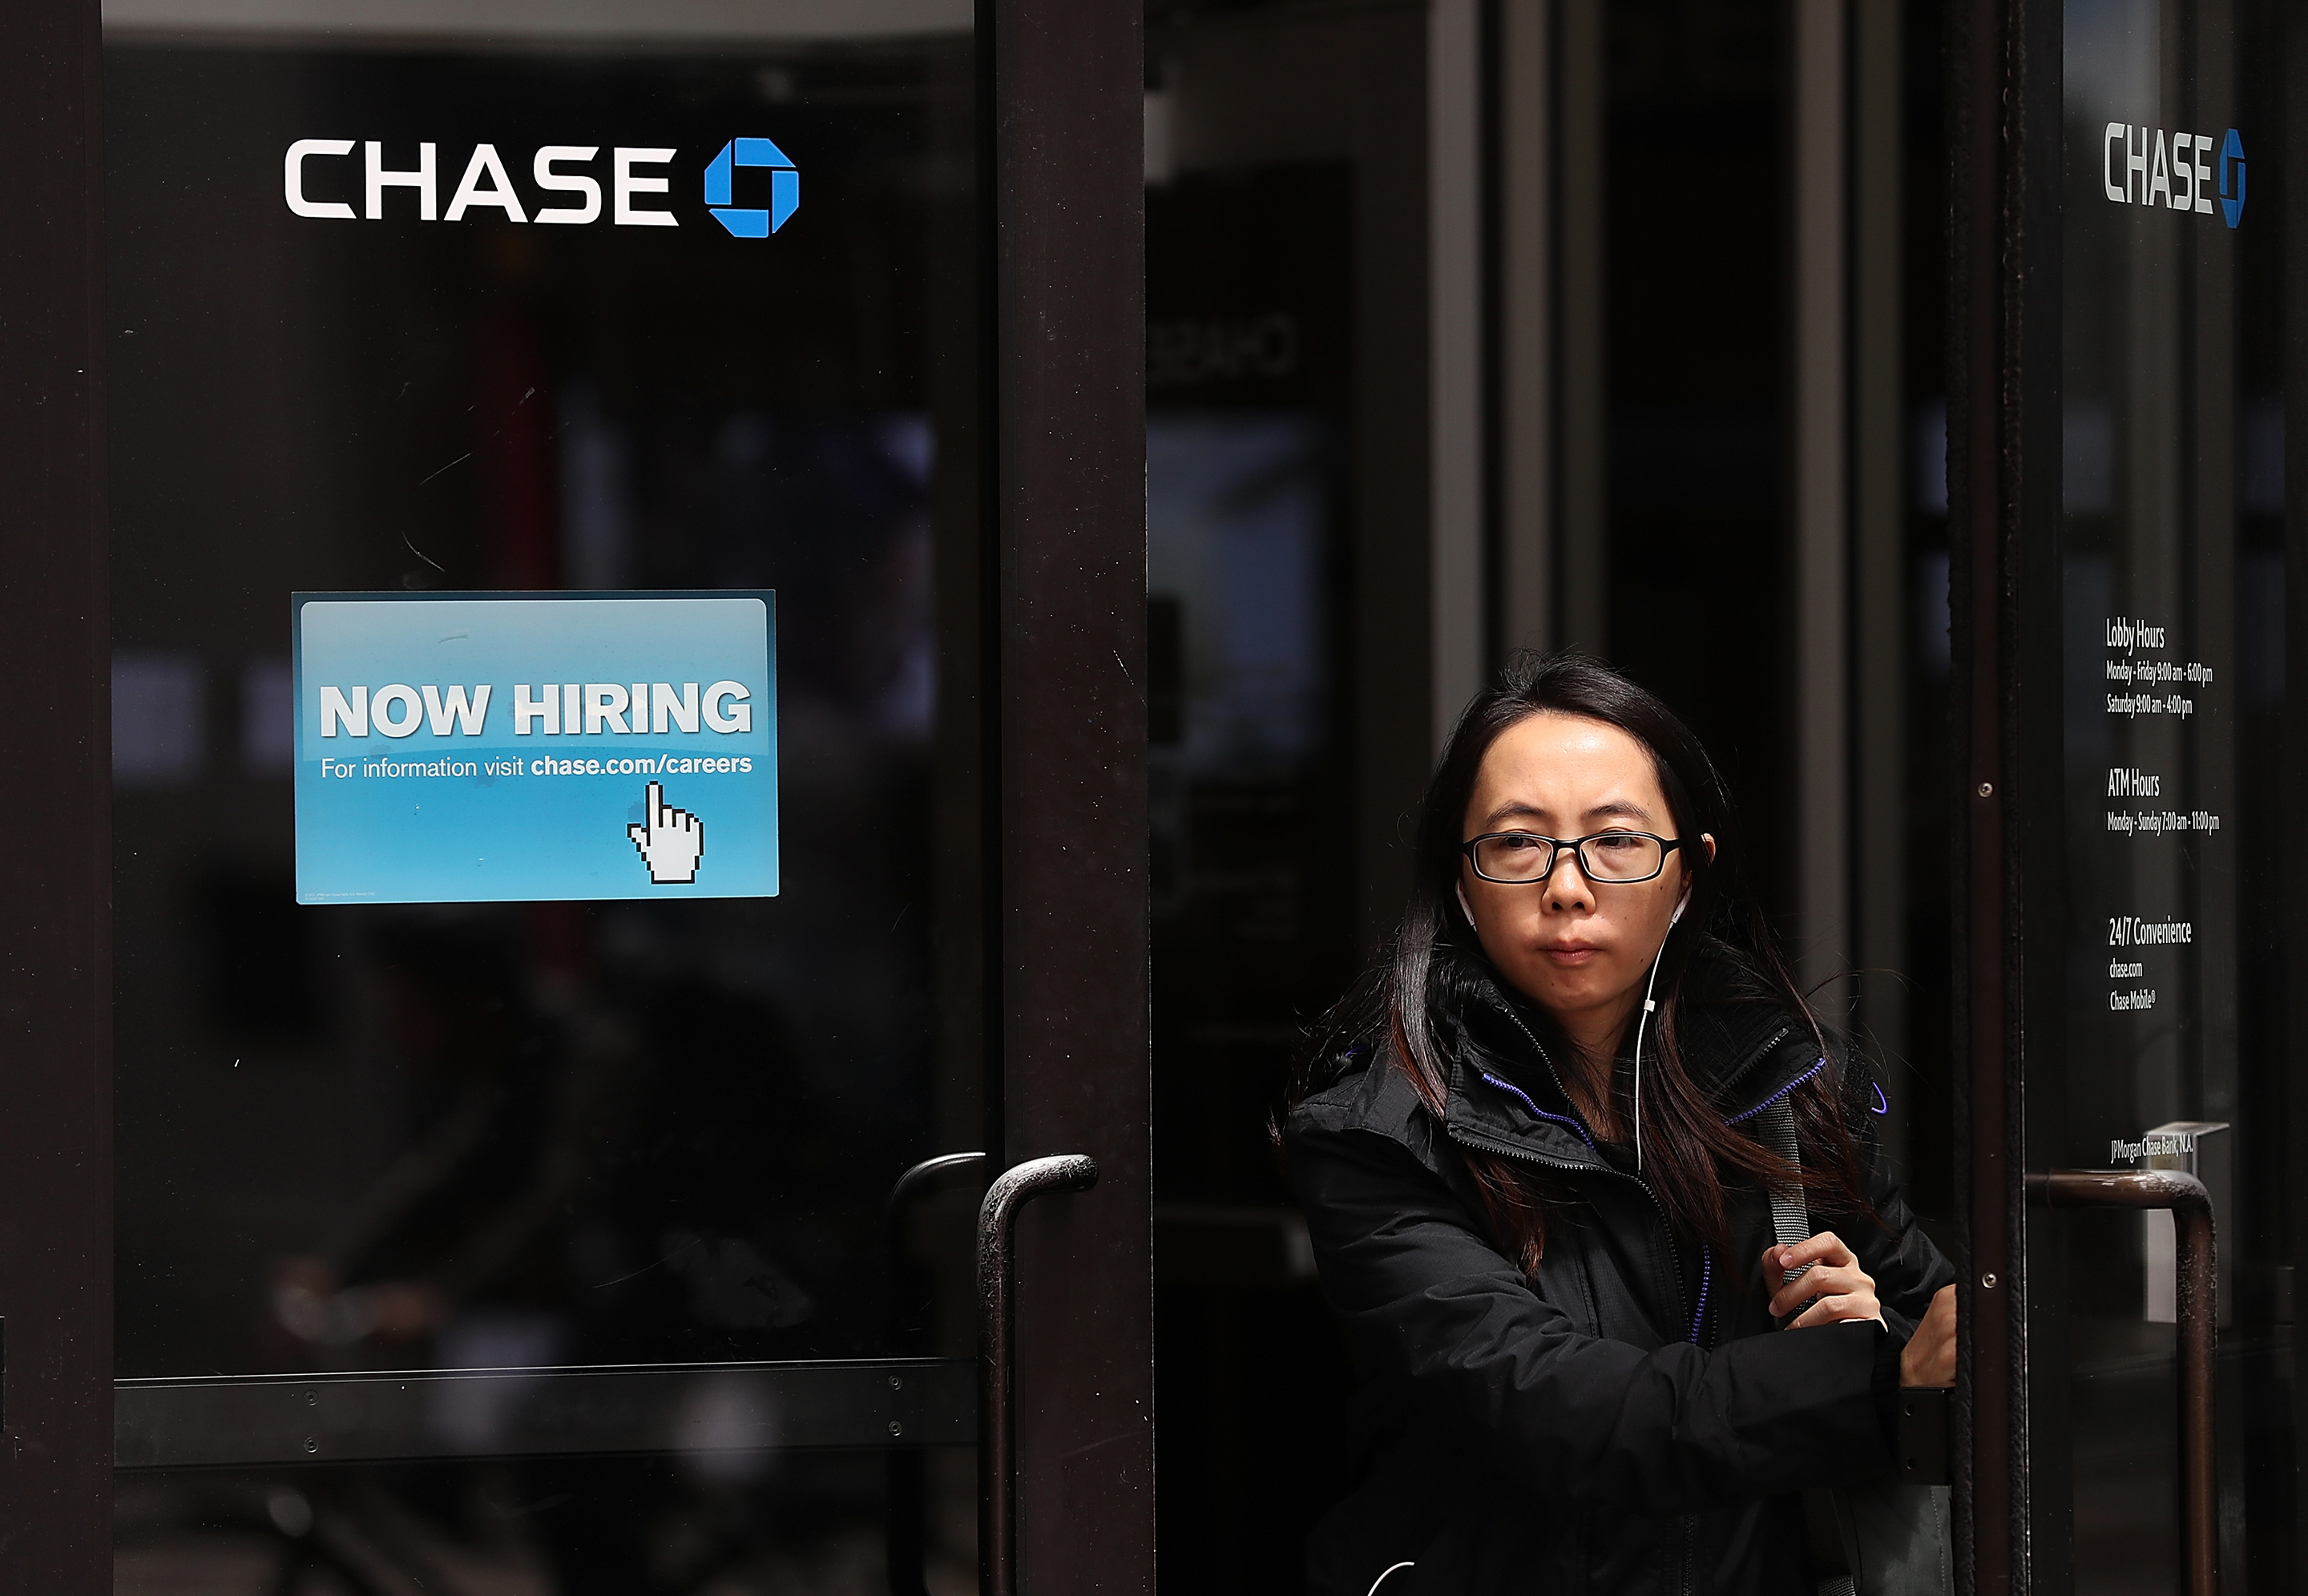 chase-bank-woman-hiring